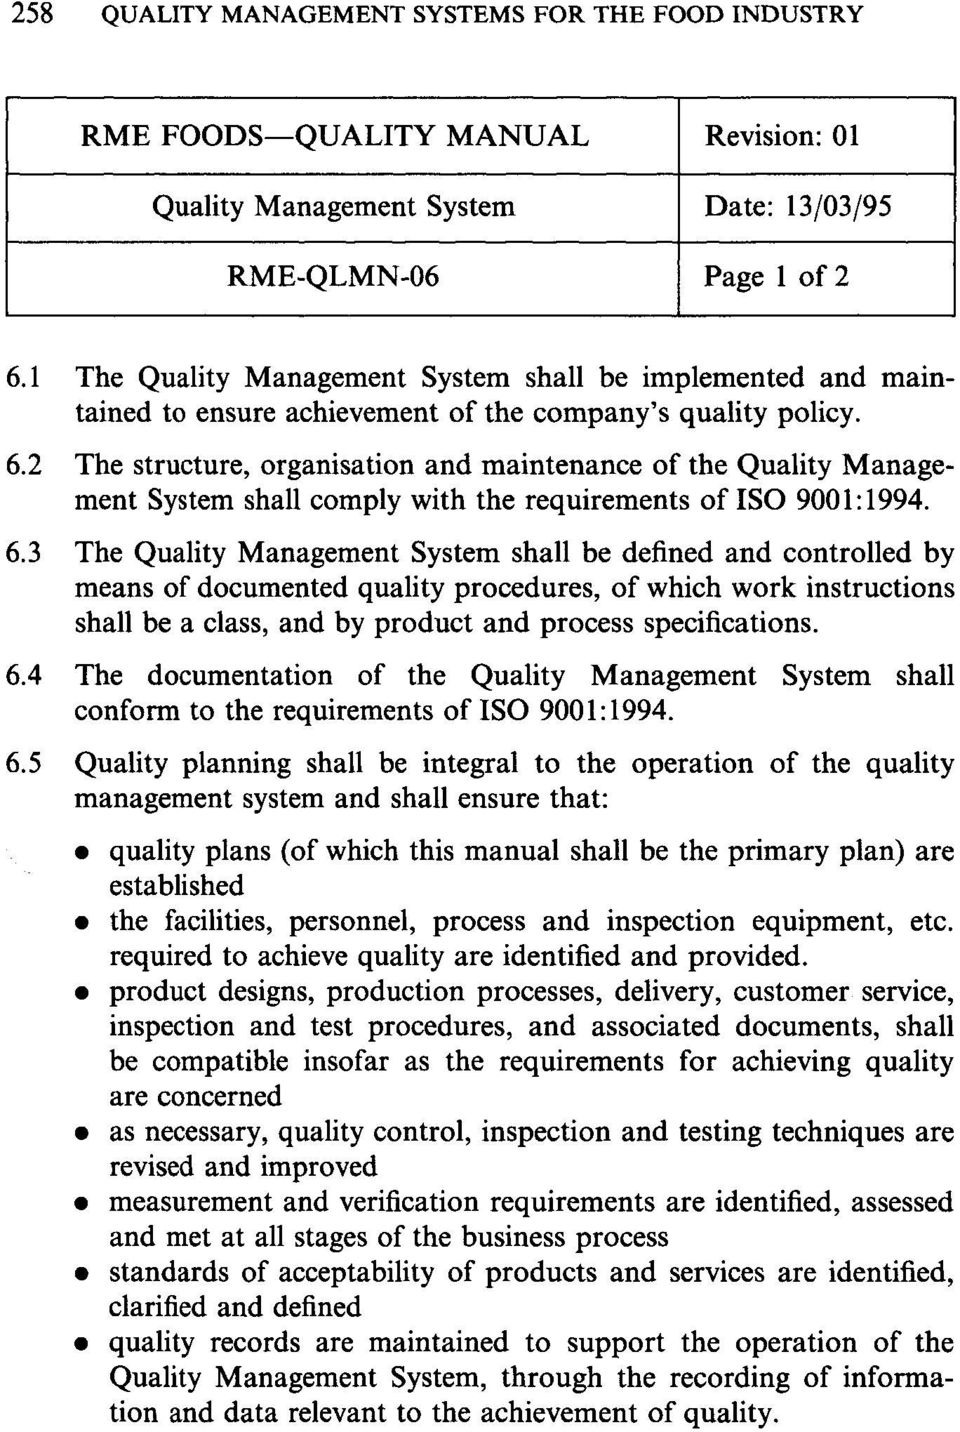 2 The structure, organisation and maintenance of the Quality Management System shall comply with the requirements ofiso 9001:1994. 6.